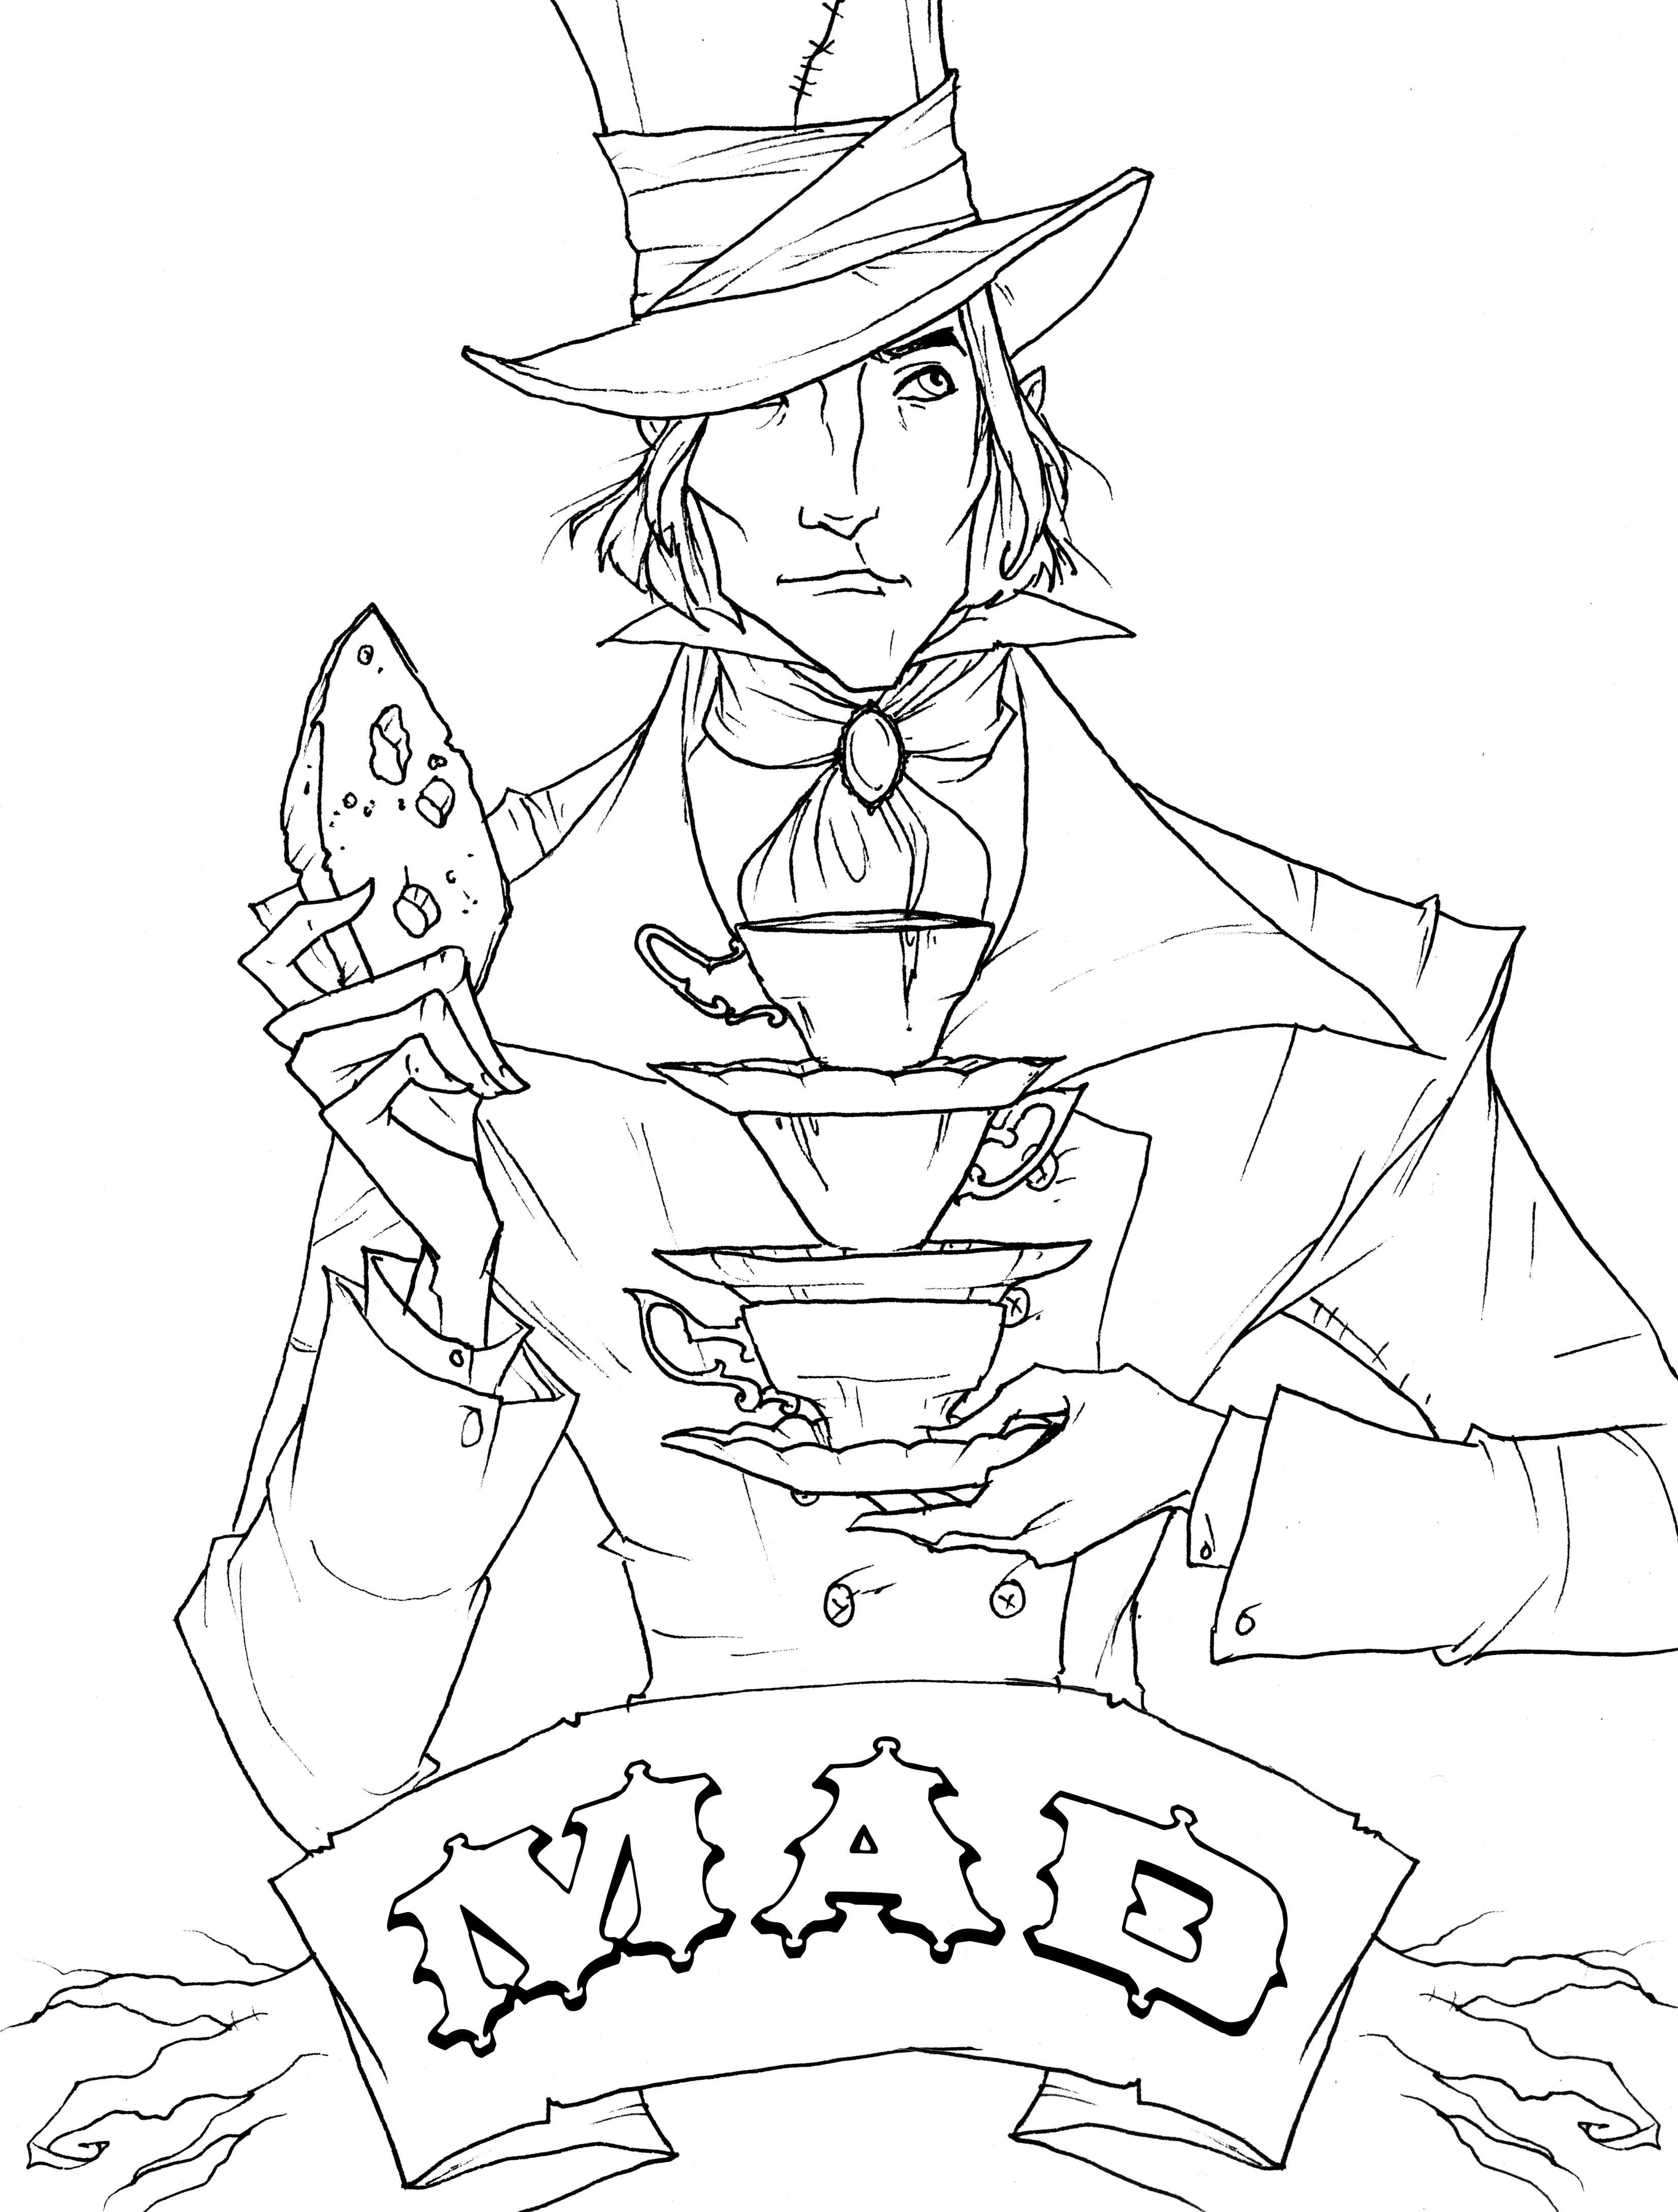 Enjoy This Free Mad Hatter Coloring Page From Impact S Alice S Wonderfilled Adventures By Abigail Larson Coloringbook Coloring Book Pages Coloring Books Art